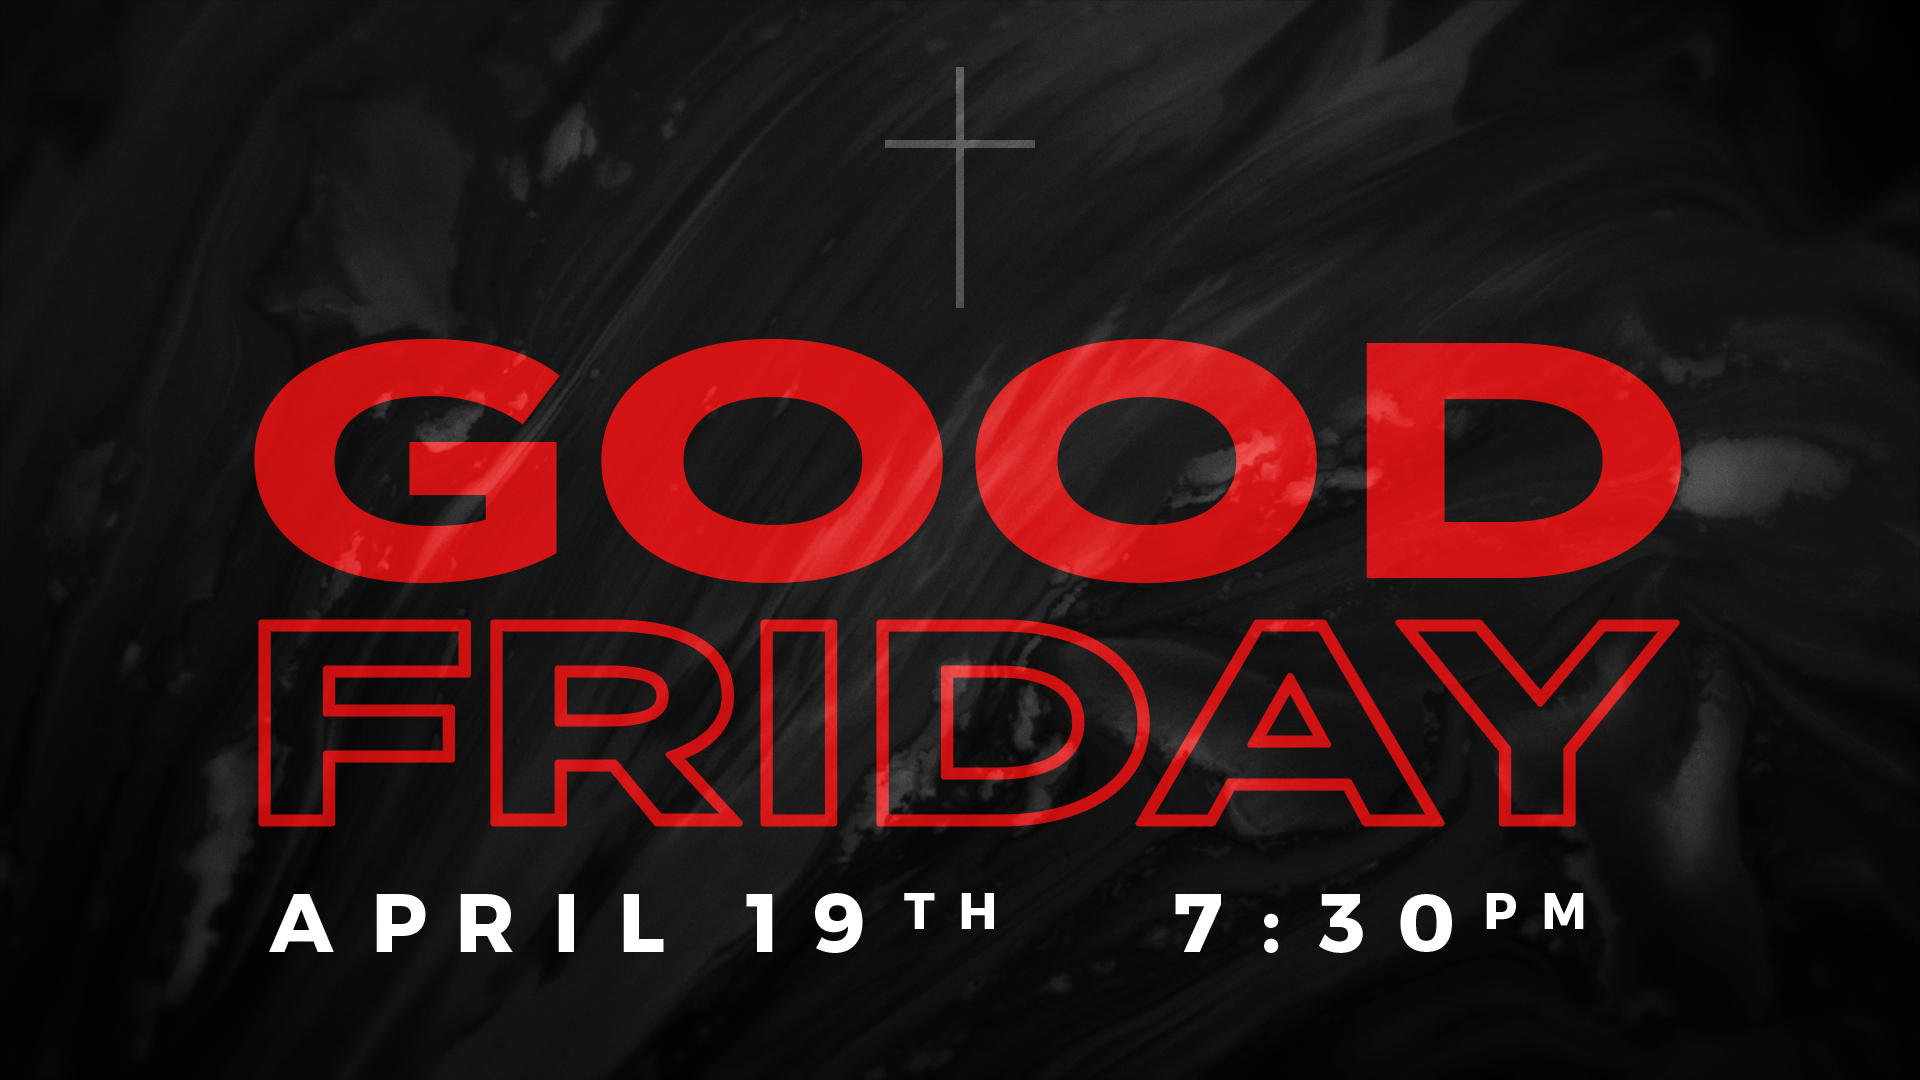 Good-Friday-2019-event.jpg